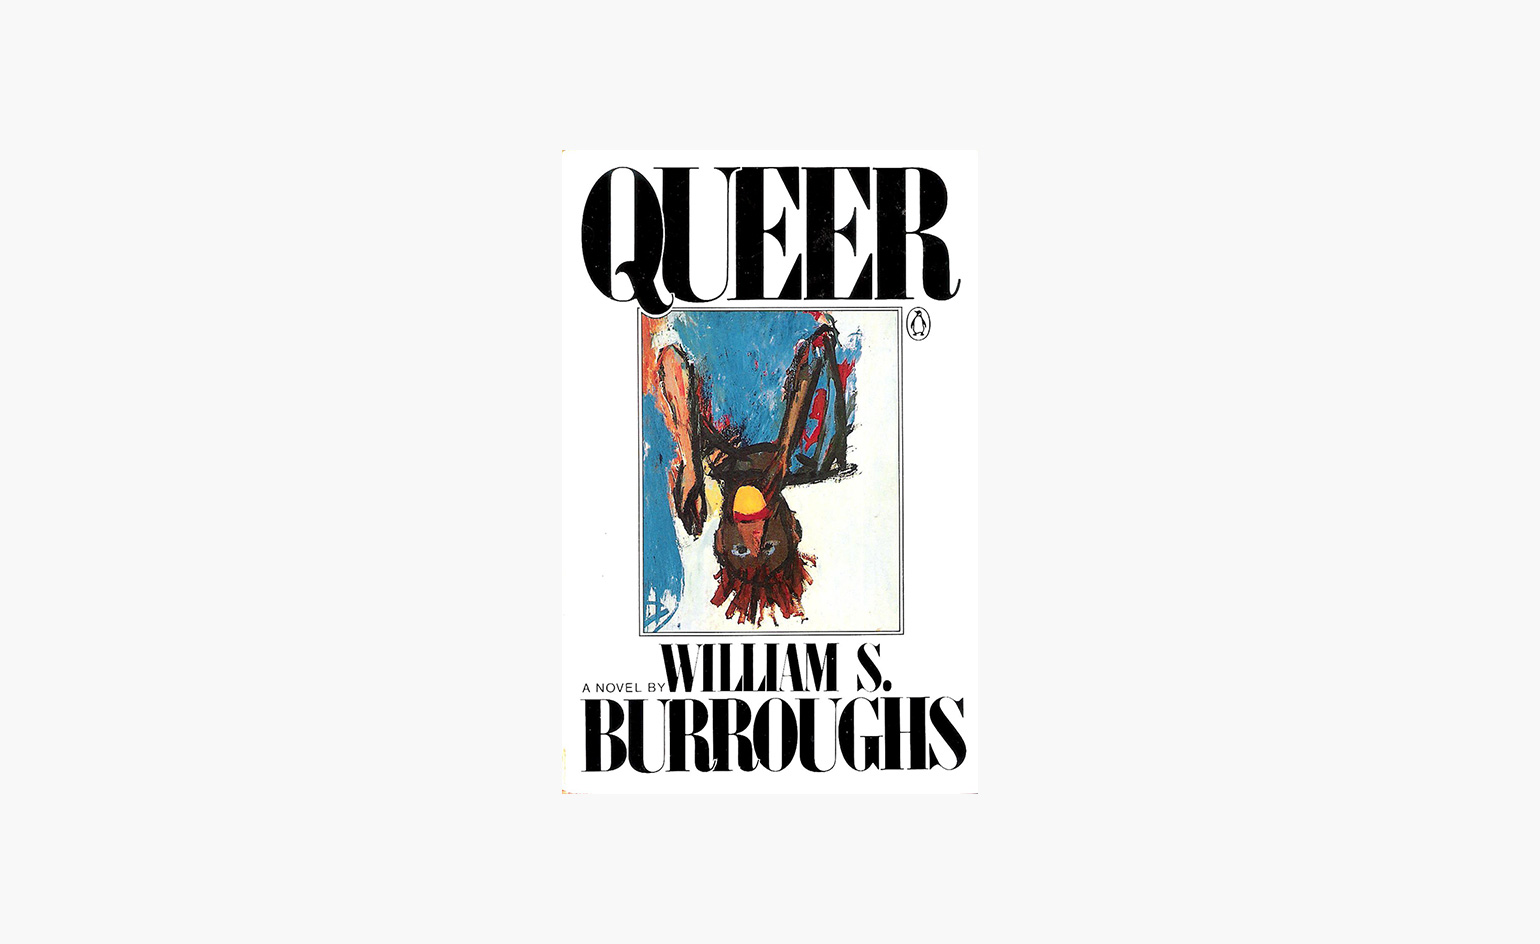 Queer – William S Burroughs book cover